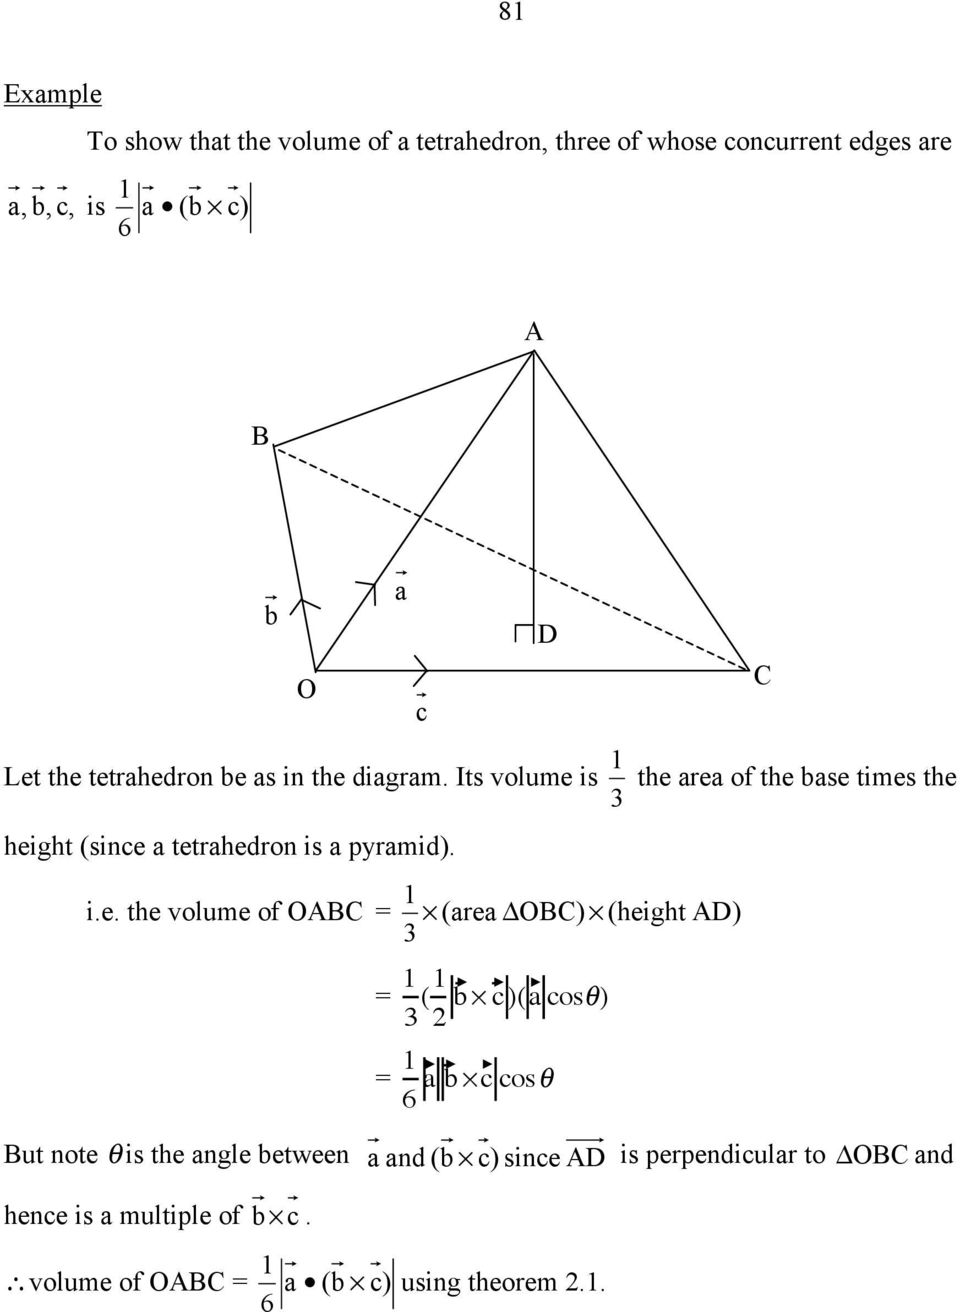 Its volume is the re of the se times the height (since tetrhedron is pyrmid. i.e. the volume of OABC =!